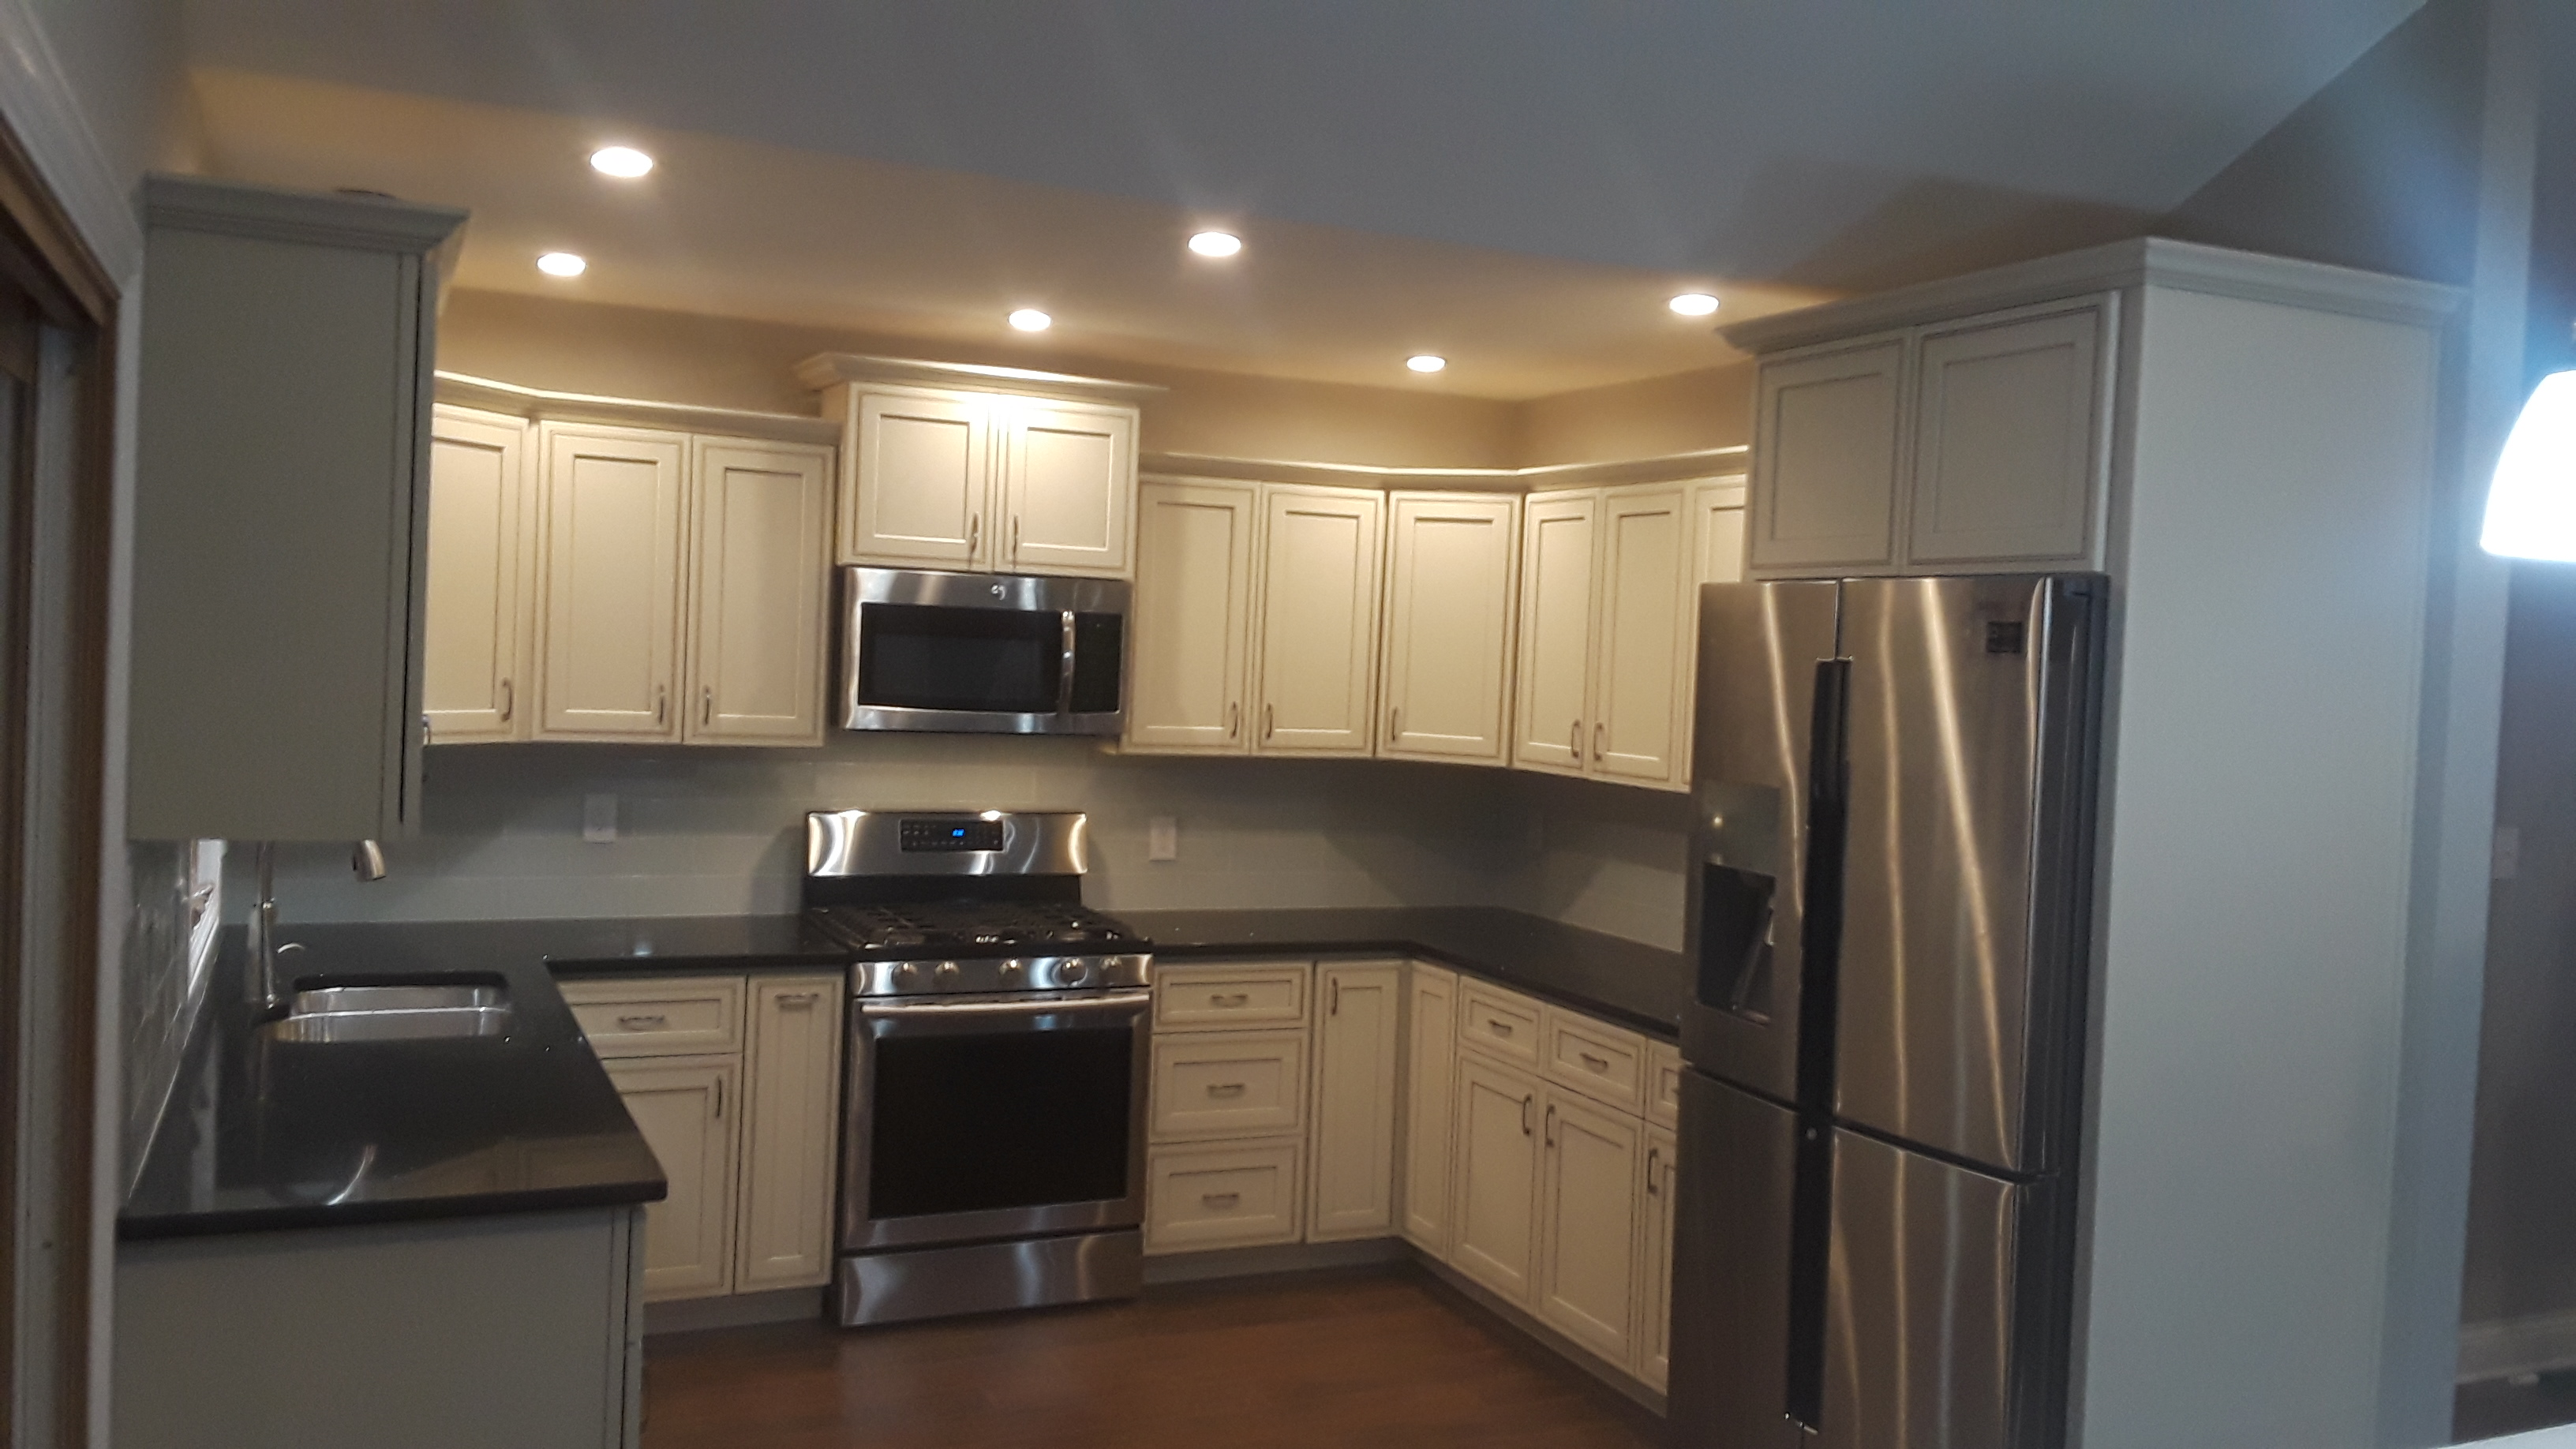 Northwest Indiana Kitchen Remodeling and Design Company